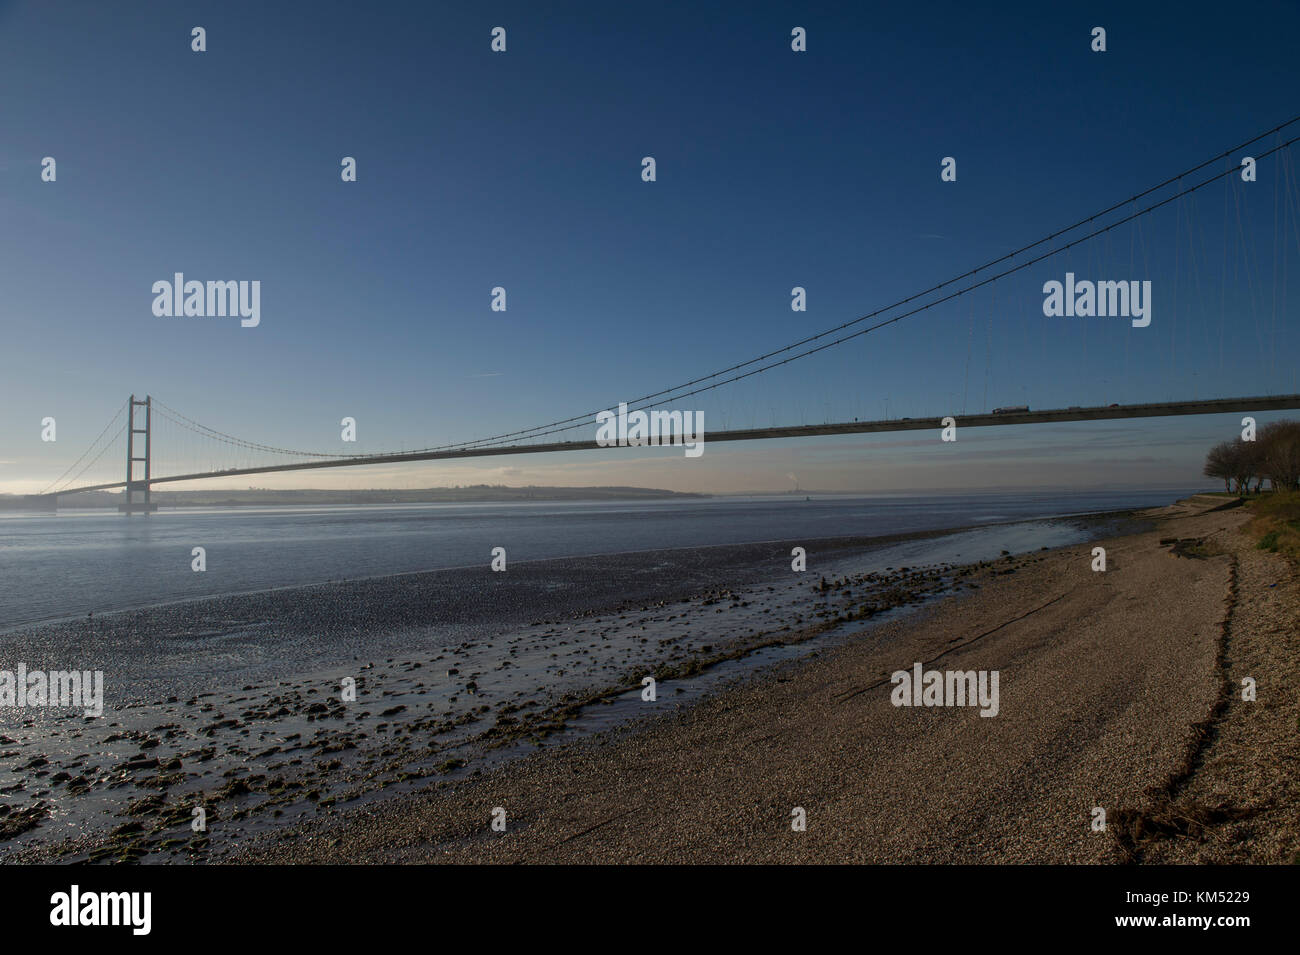 The Humber Bridge near Hull is a single span suspension bridge over the Humber estuary connecting East Yorkshire - Stock Image